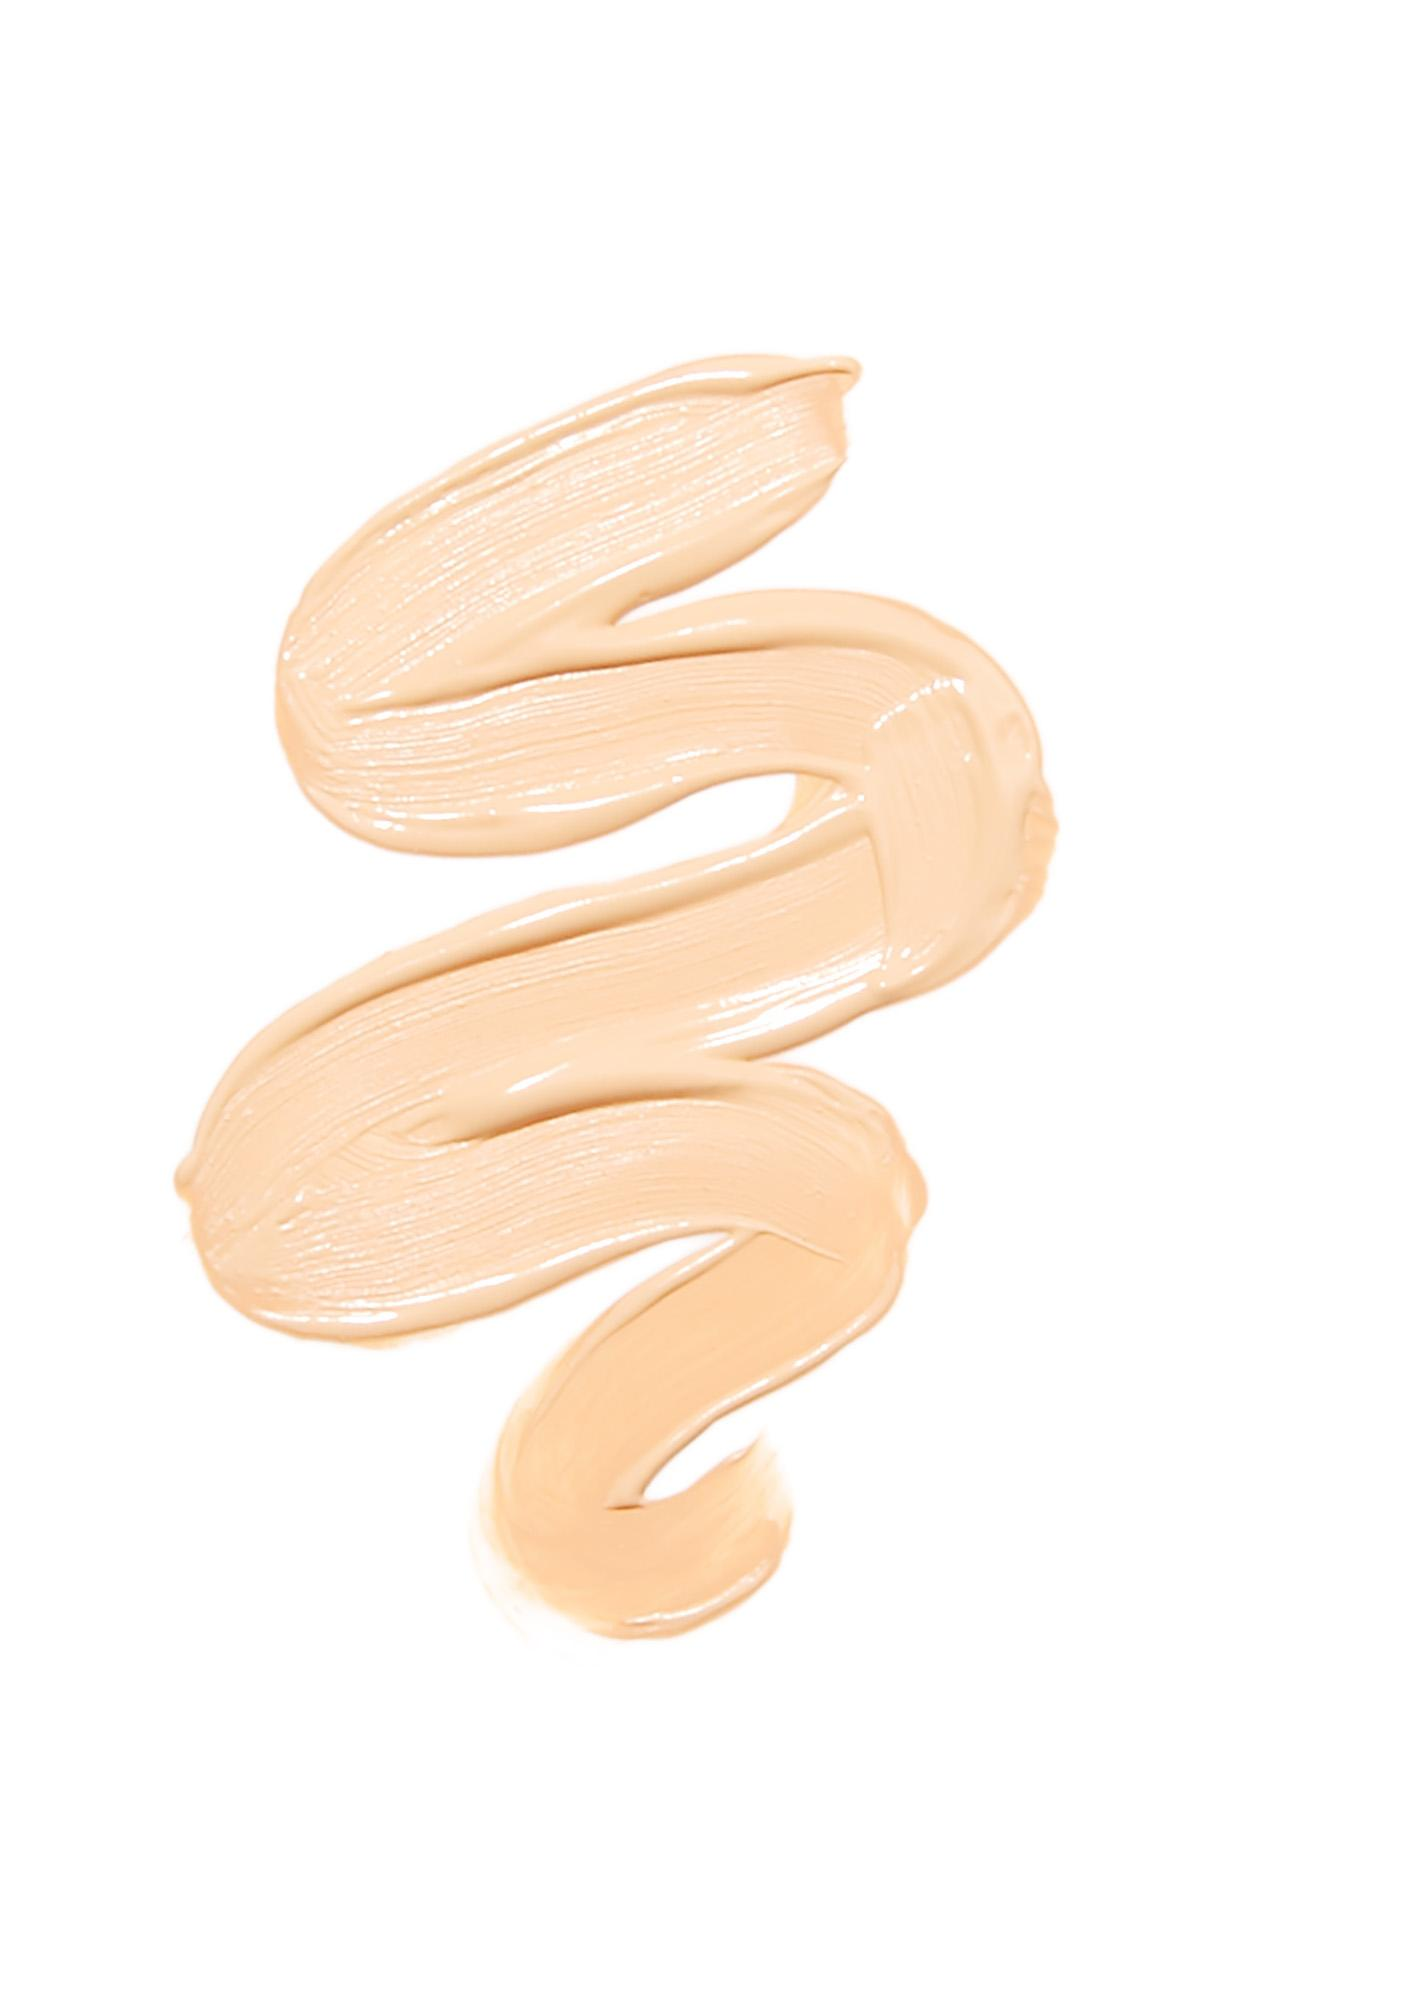 LA Girl HD Pro Natural Concealer